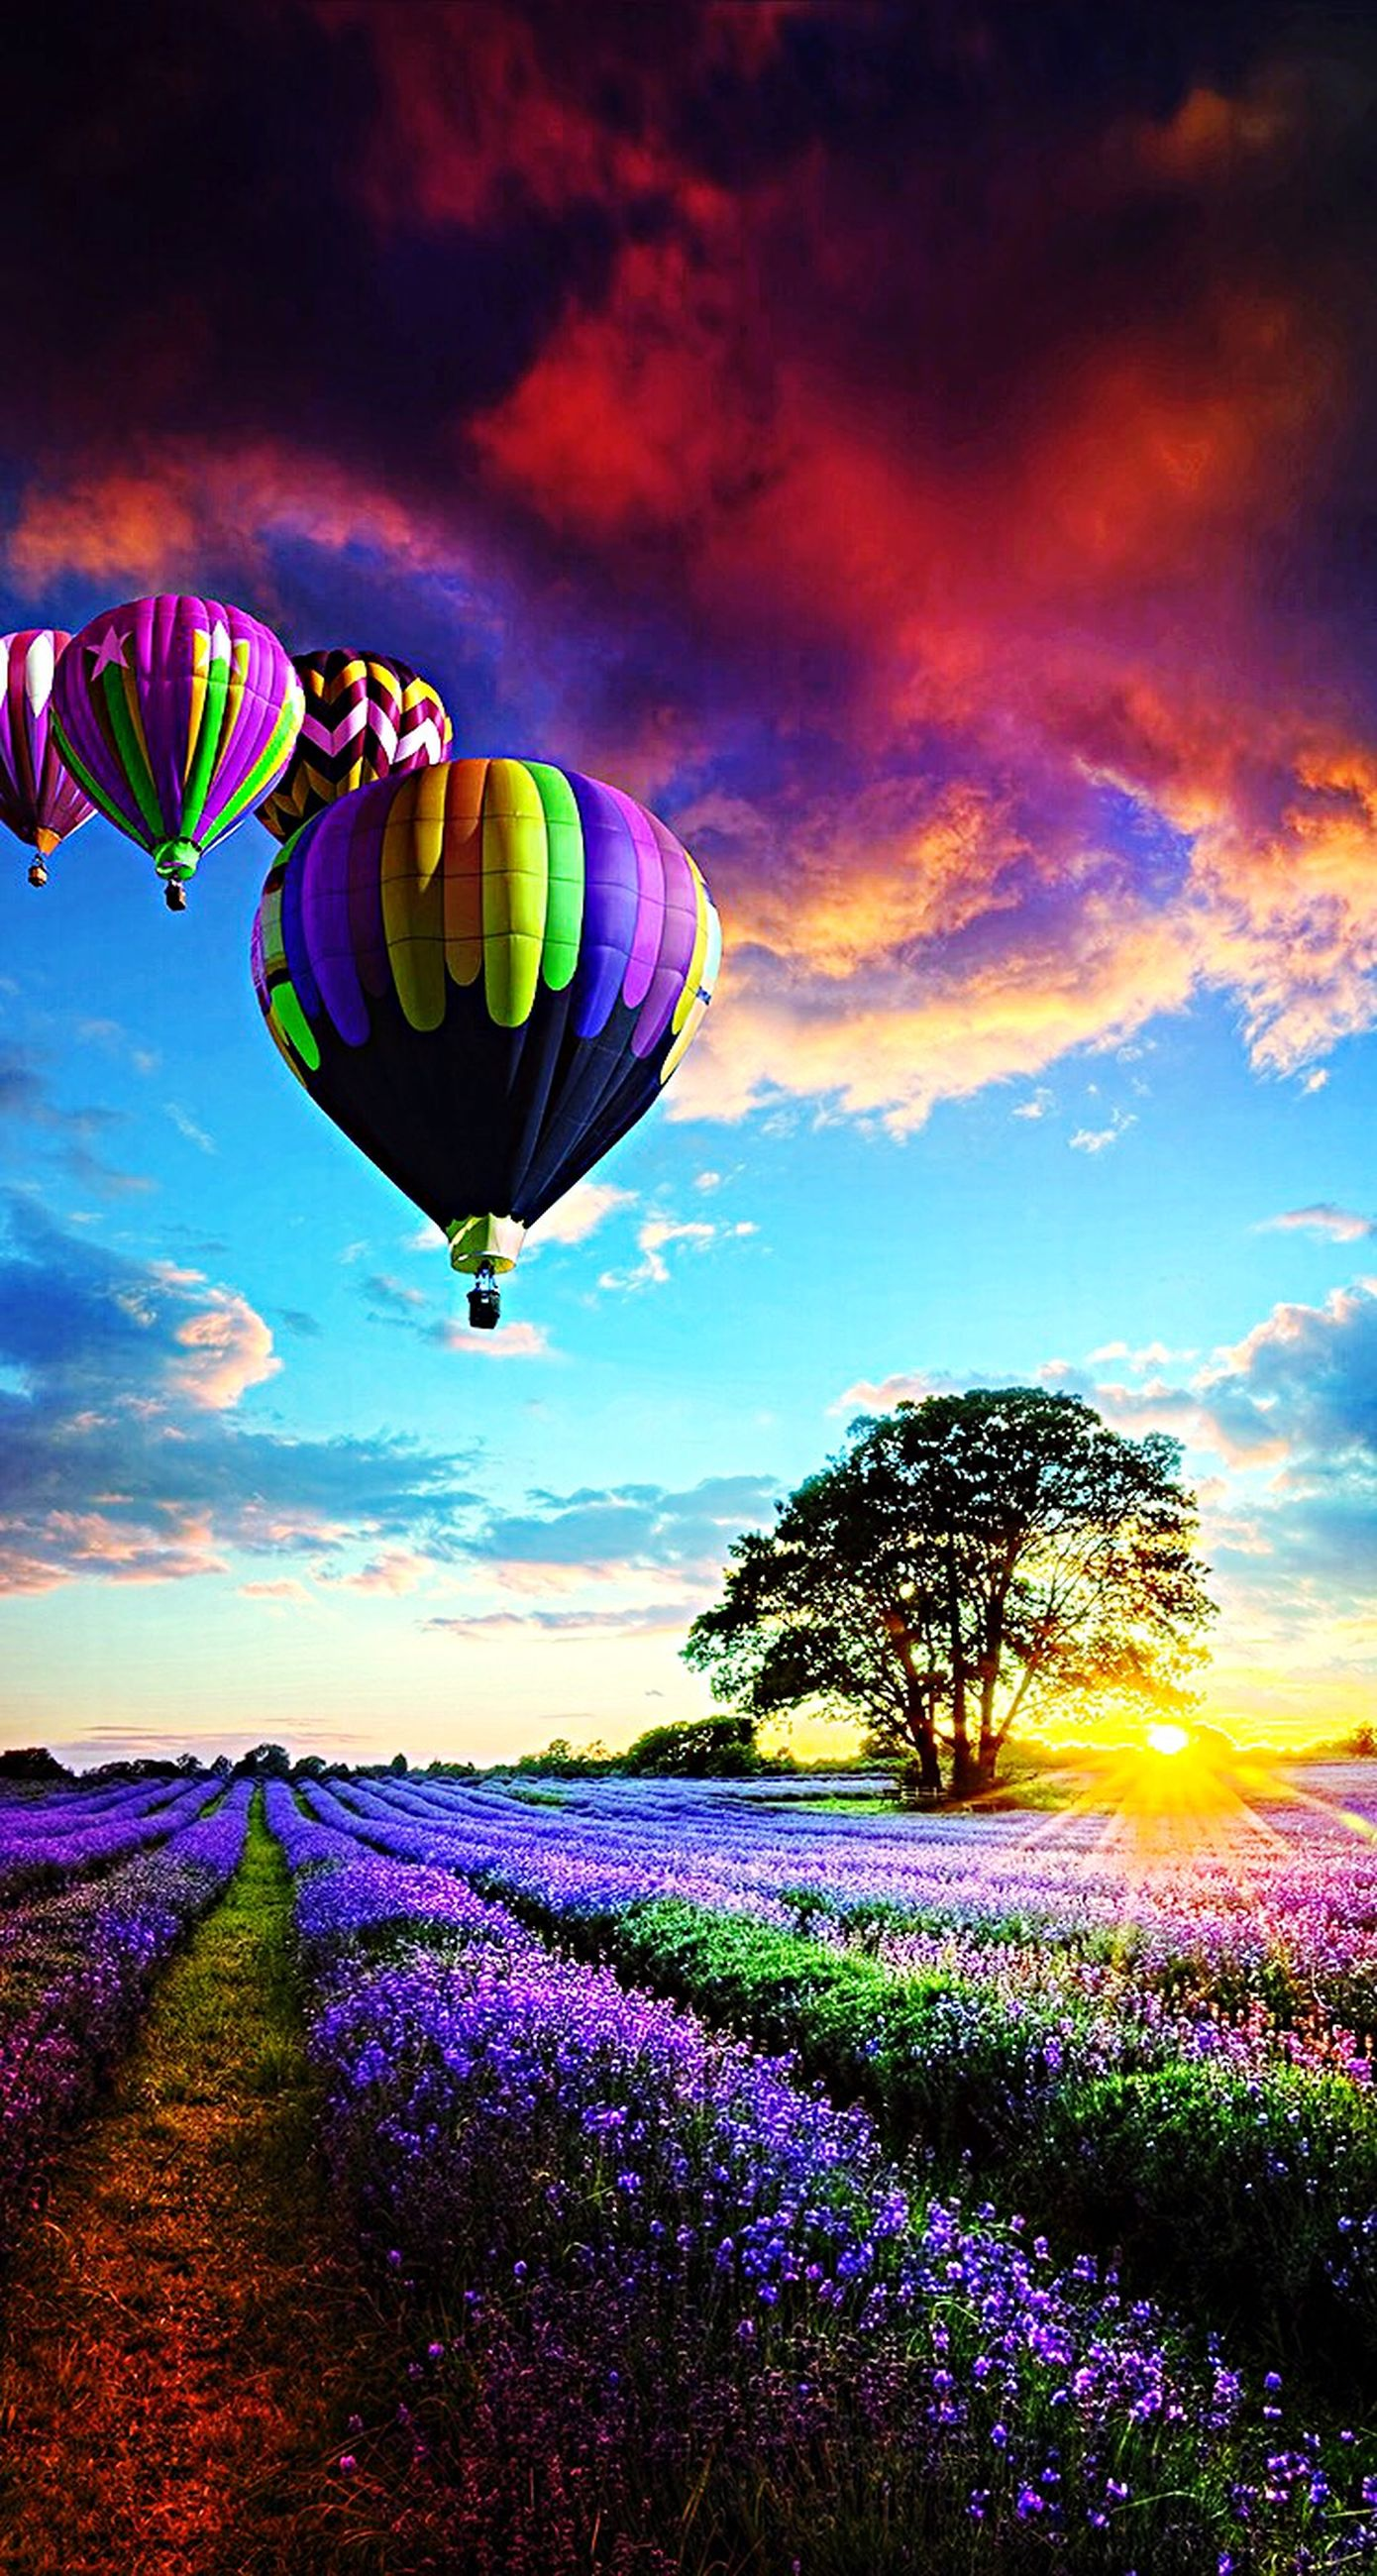 sky, cloud - sky, tranquil scene, multi colored, beauty in nature, tranquility, scenics, nature, cloud, landscape, mid-air, field, flying, cloudy, hot air balloon, sunset, low angle view, colorful, outdoors, purple